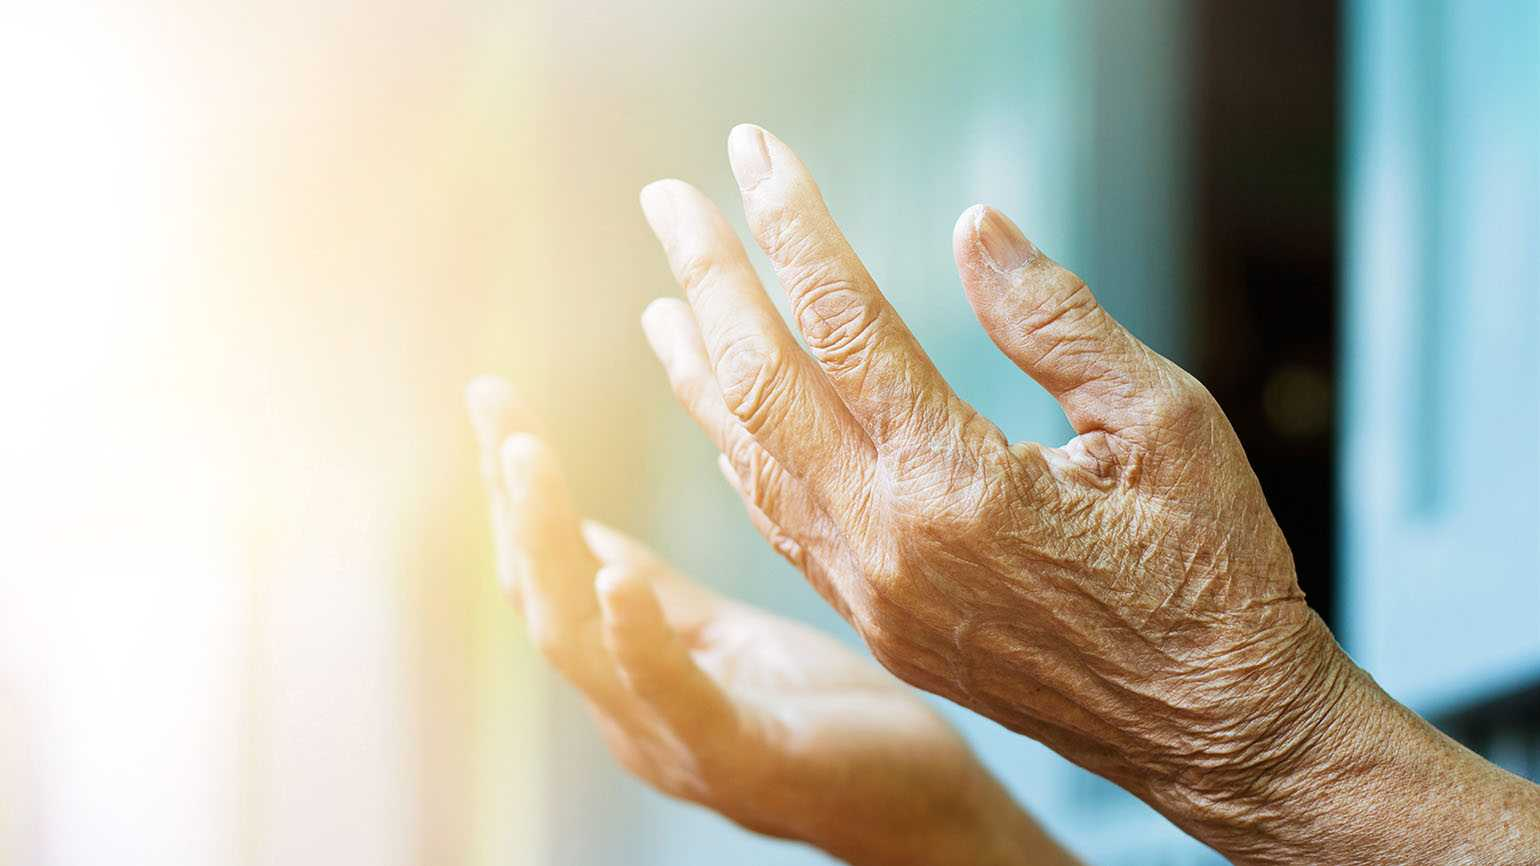 Elderly woman holding her hands out towards light